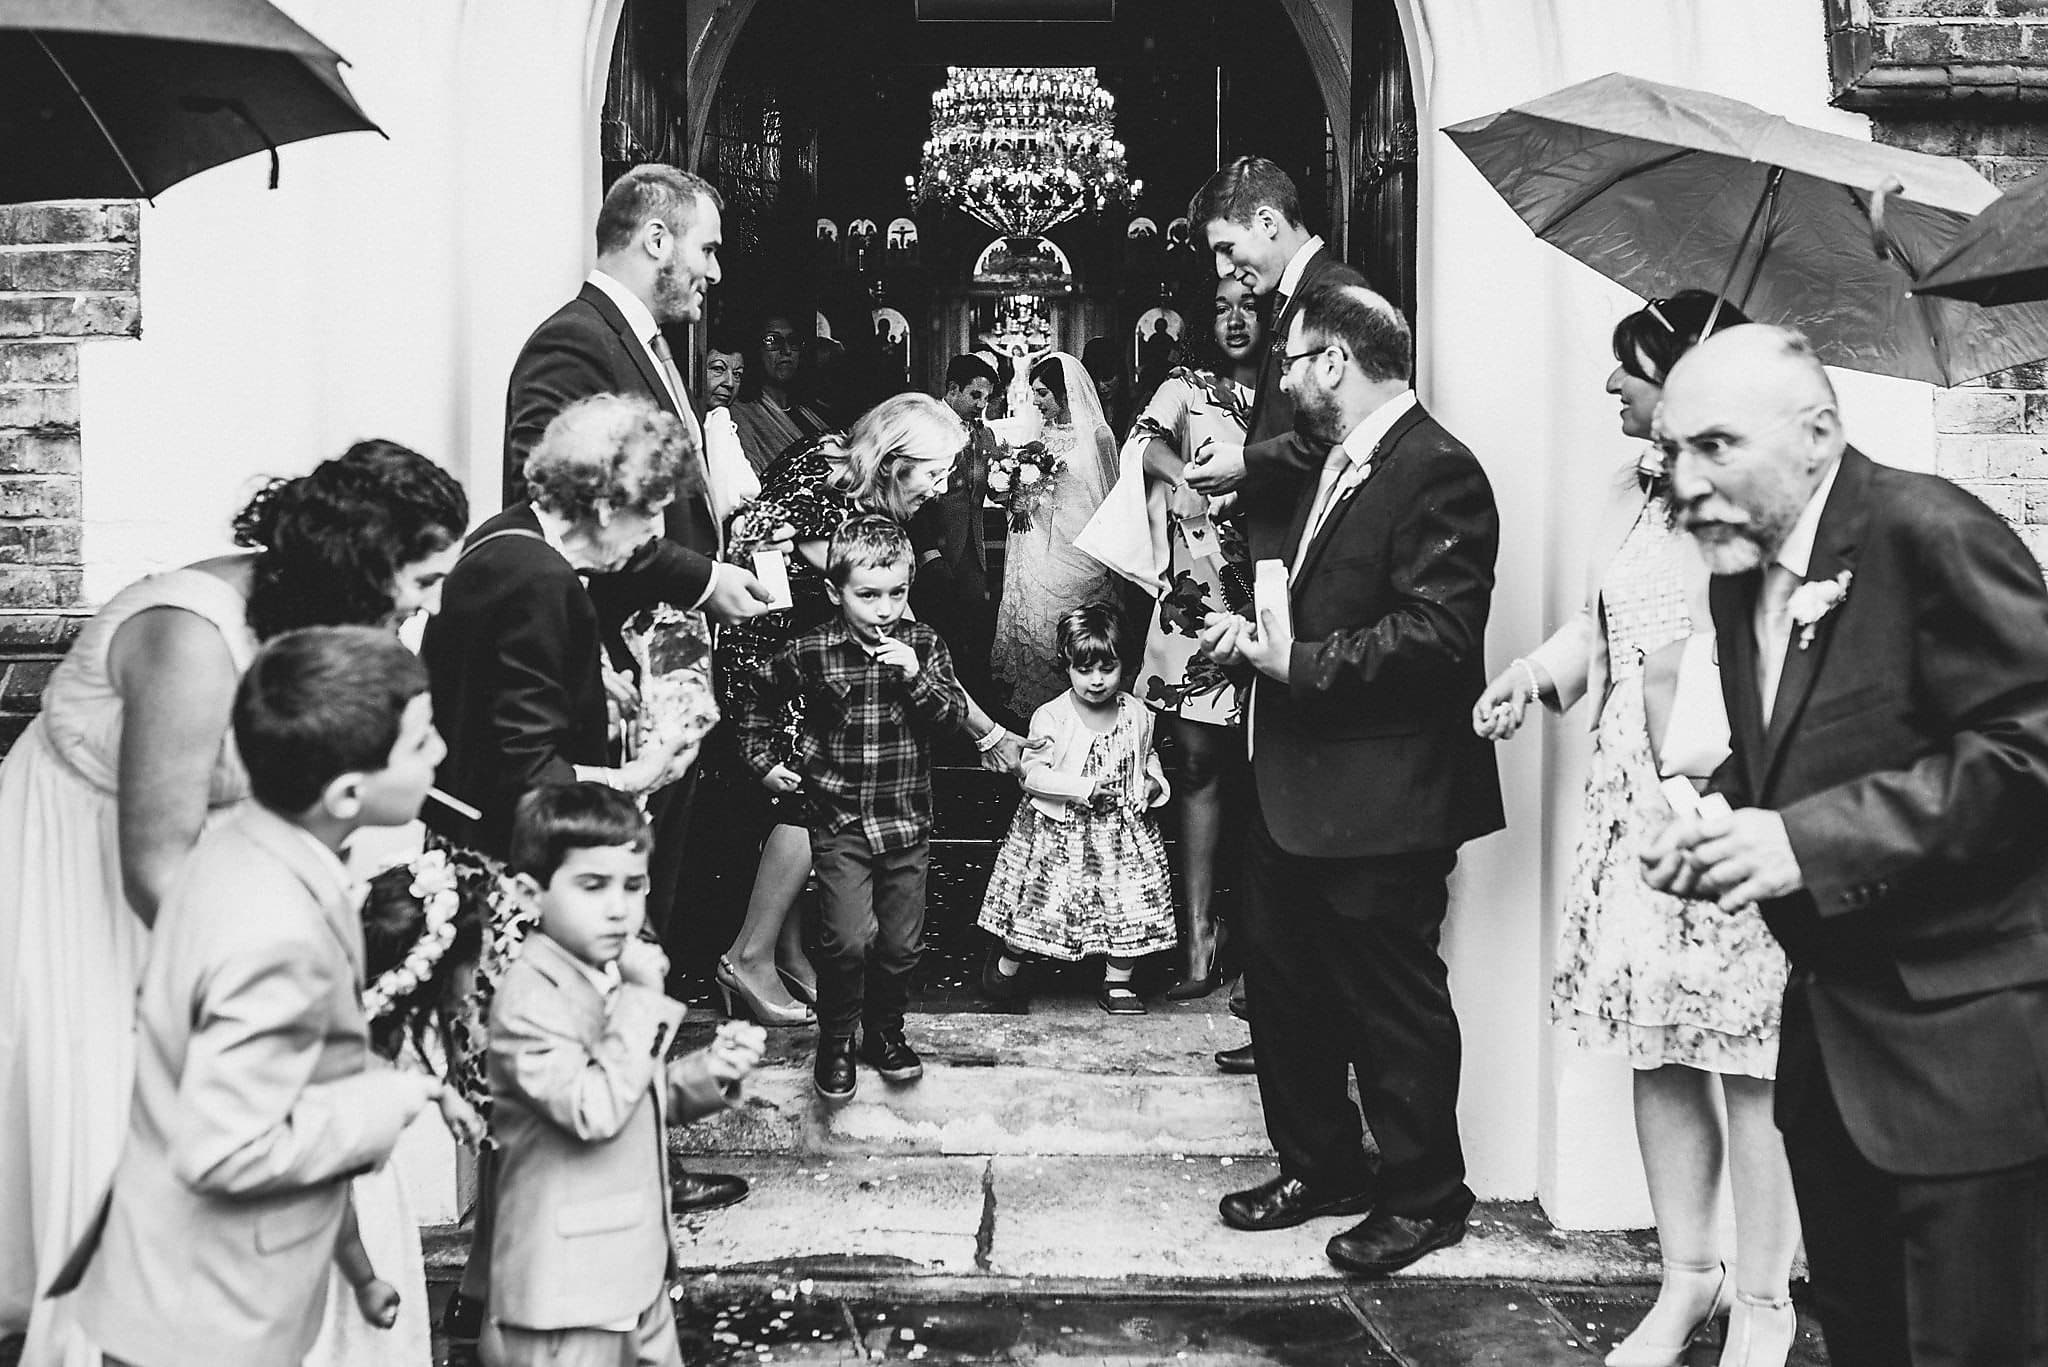 Wedding guests getting ready to throw confetti in the rain at Saint Andrew's Greek Orthodox Church